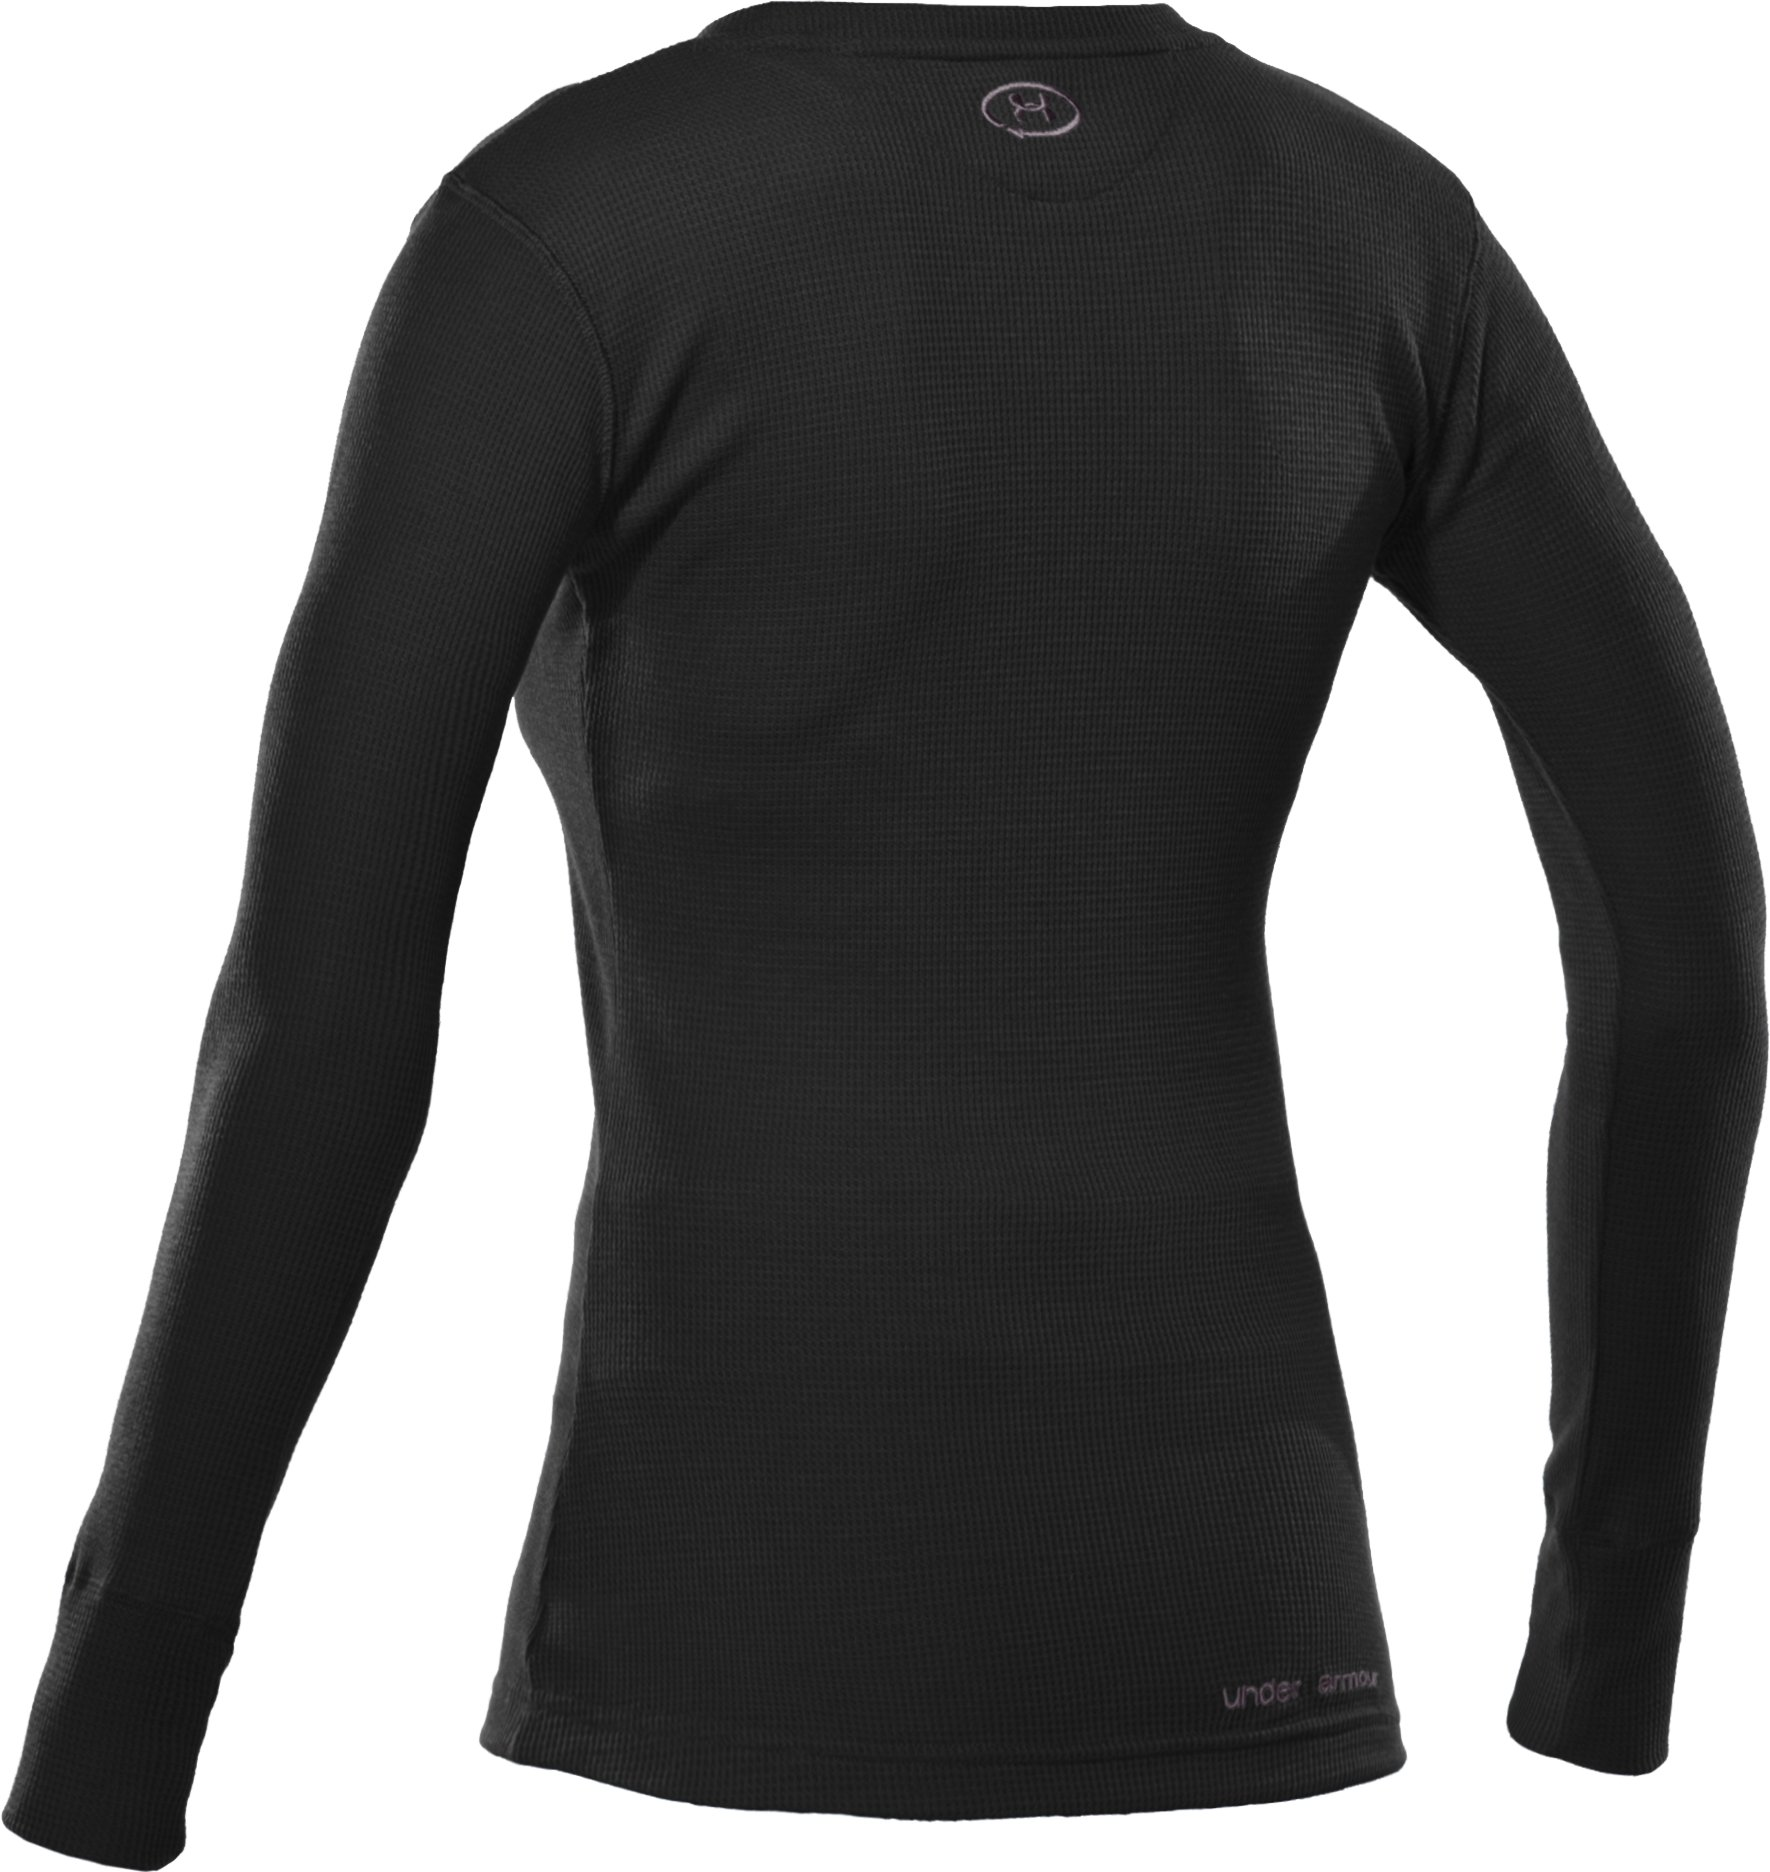 Women's Waffle Long Sleeve Crew Neck, Black